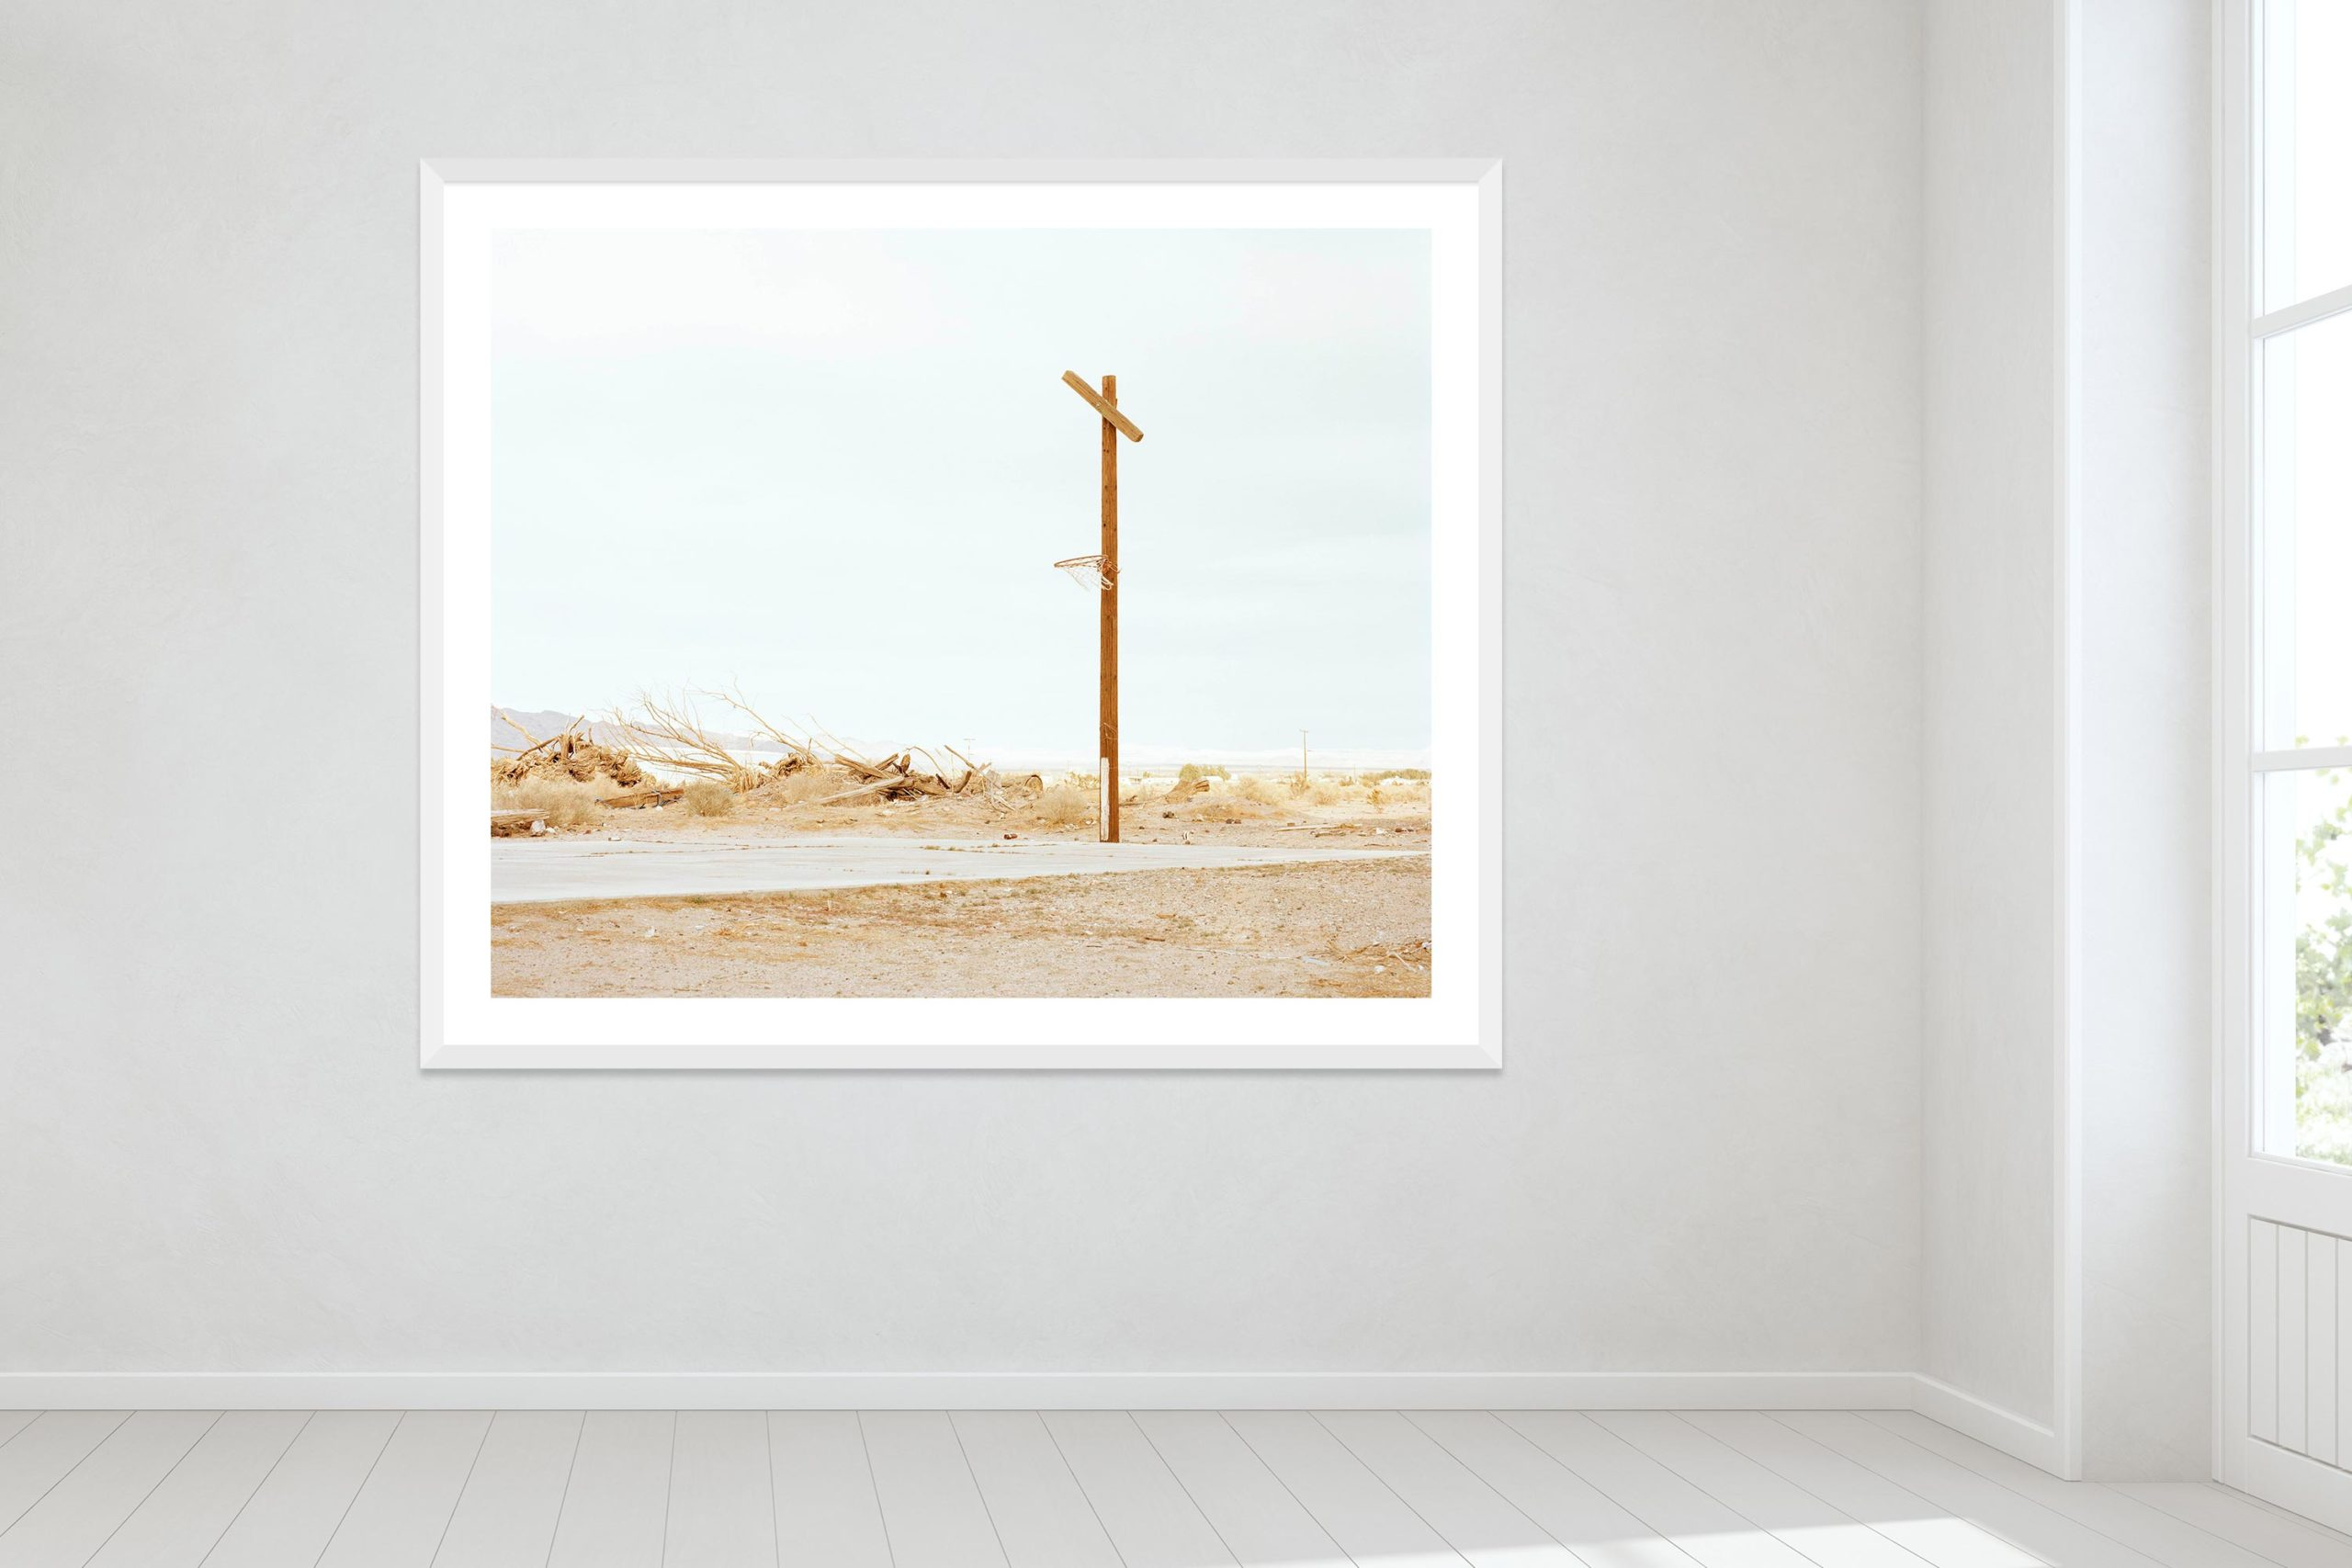 Hoop Dreams, Mojave Desert - White Frame - Oh Mojave Collection - Fine Art Photography by Toby Dixon